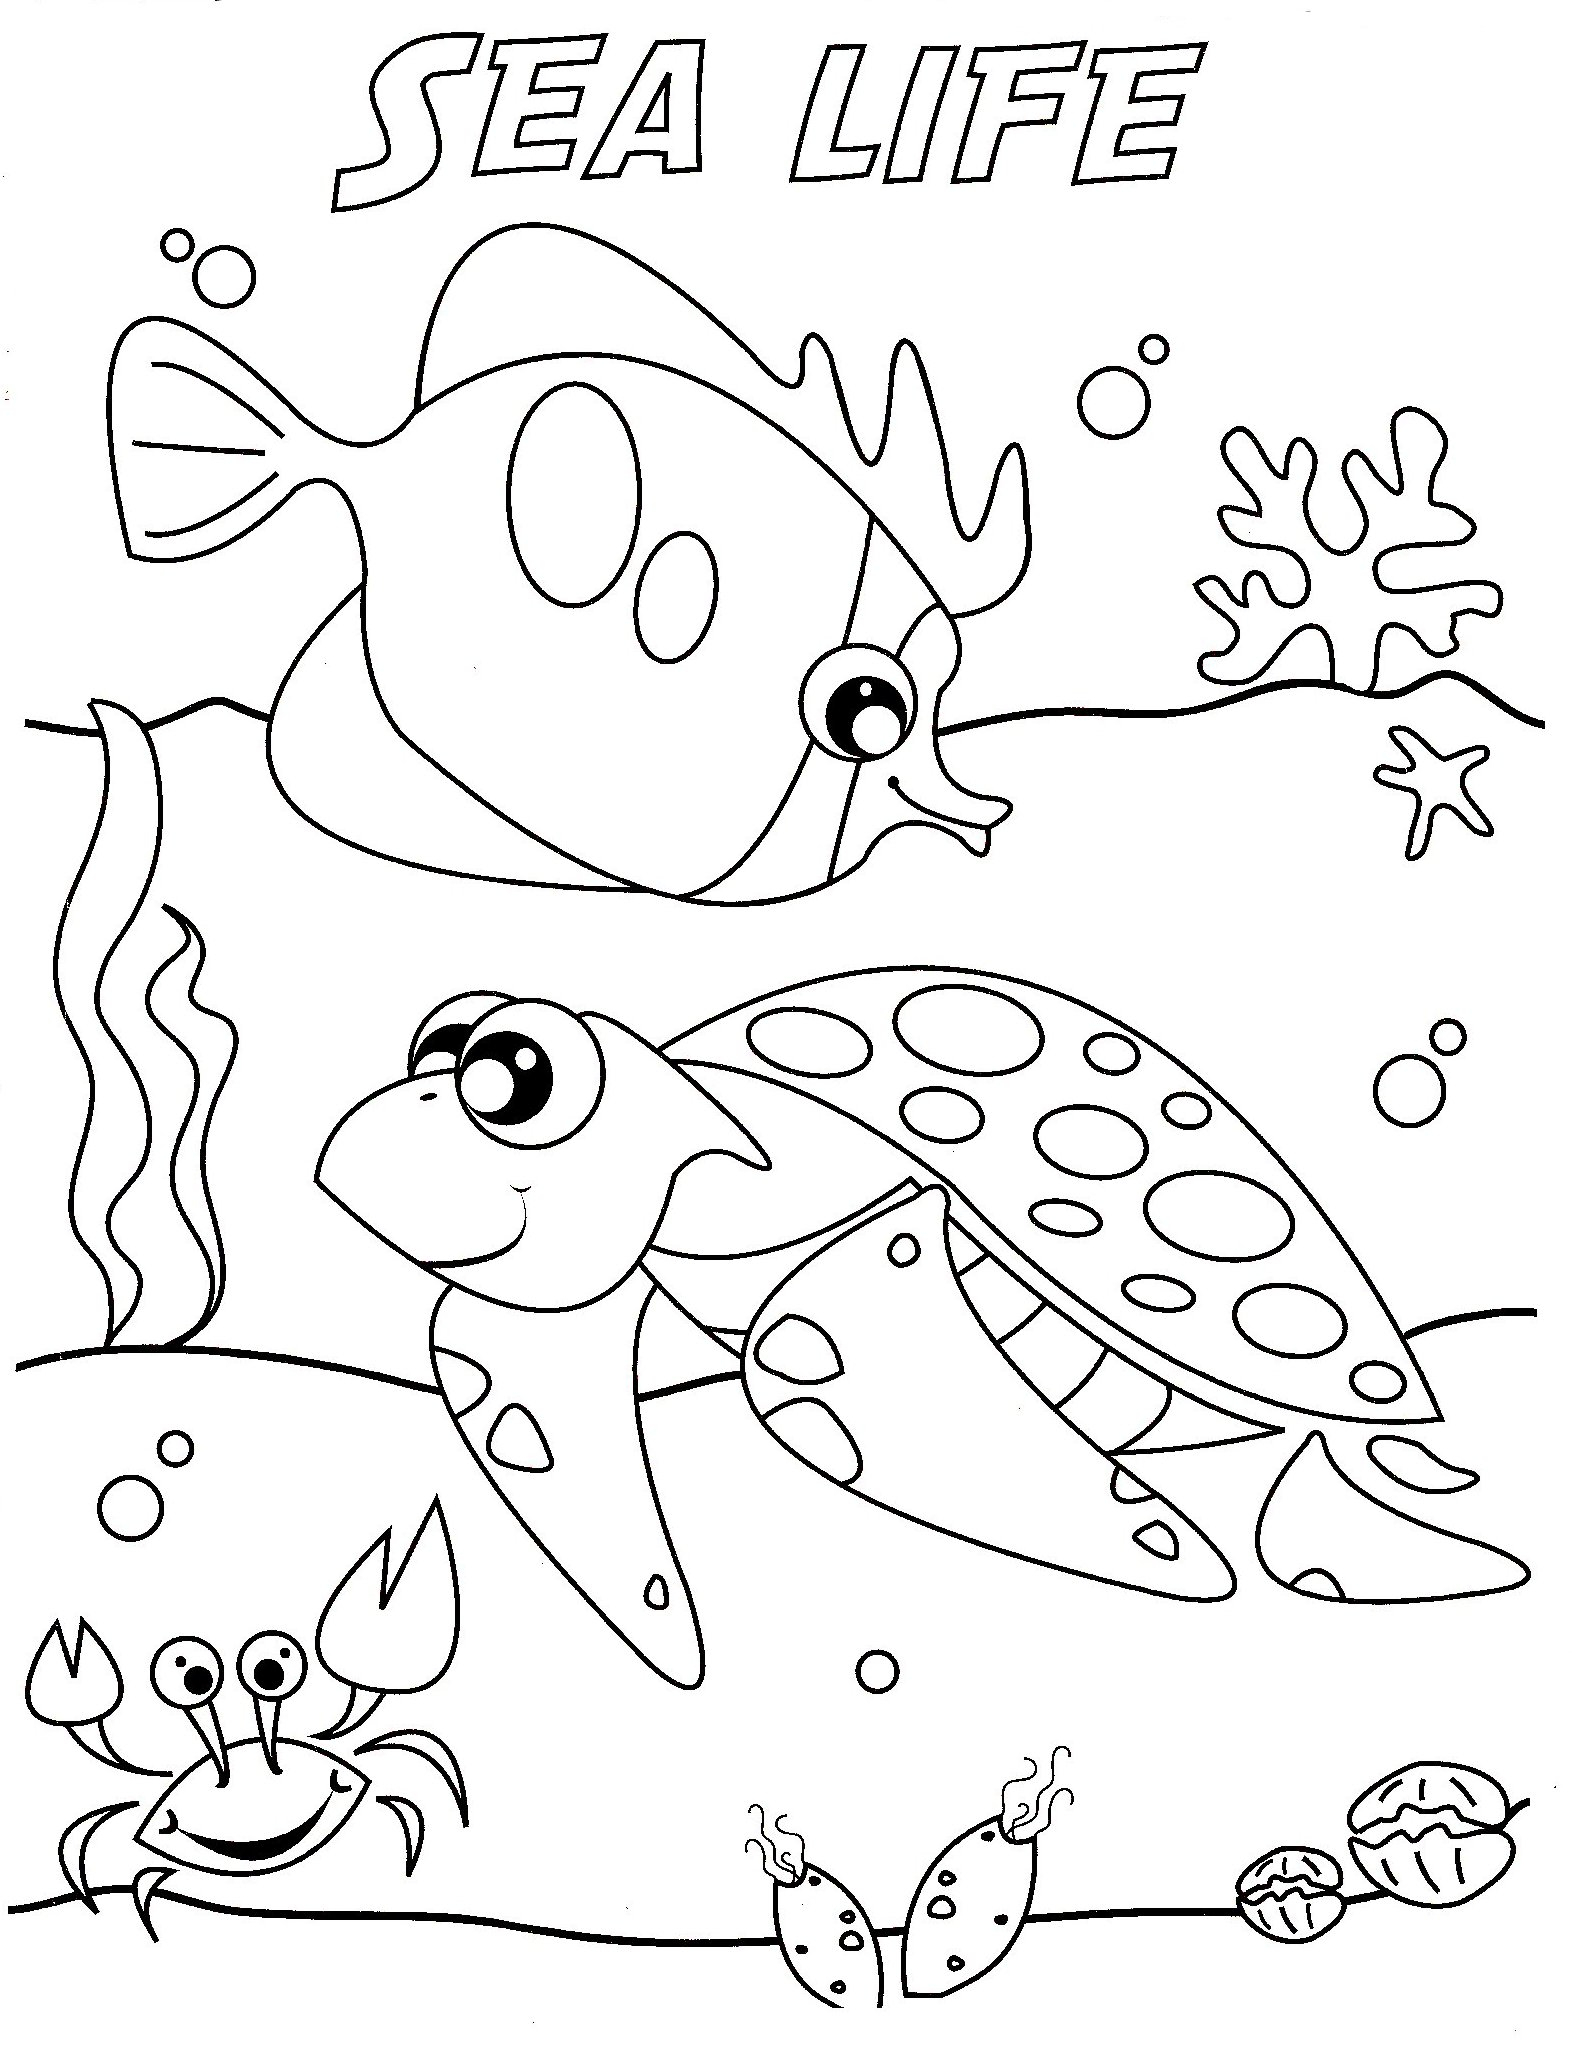 Sea World Coloring Pages Collection 14d - Free For Children